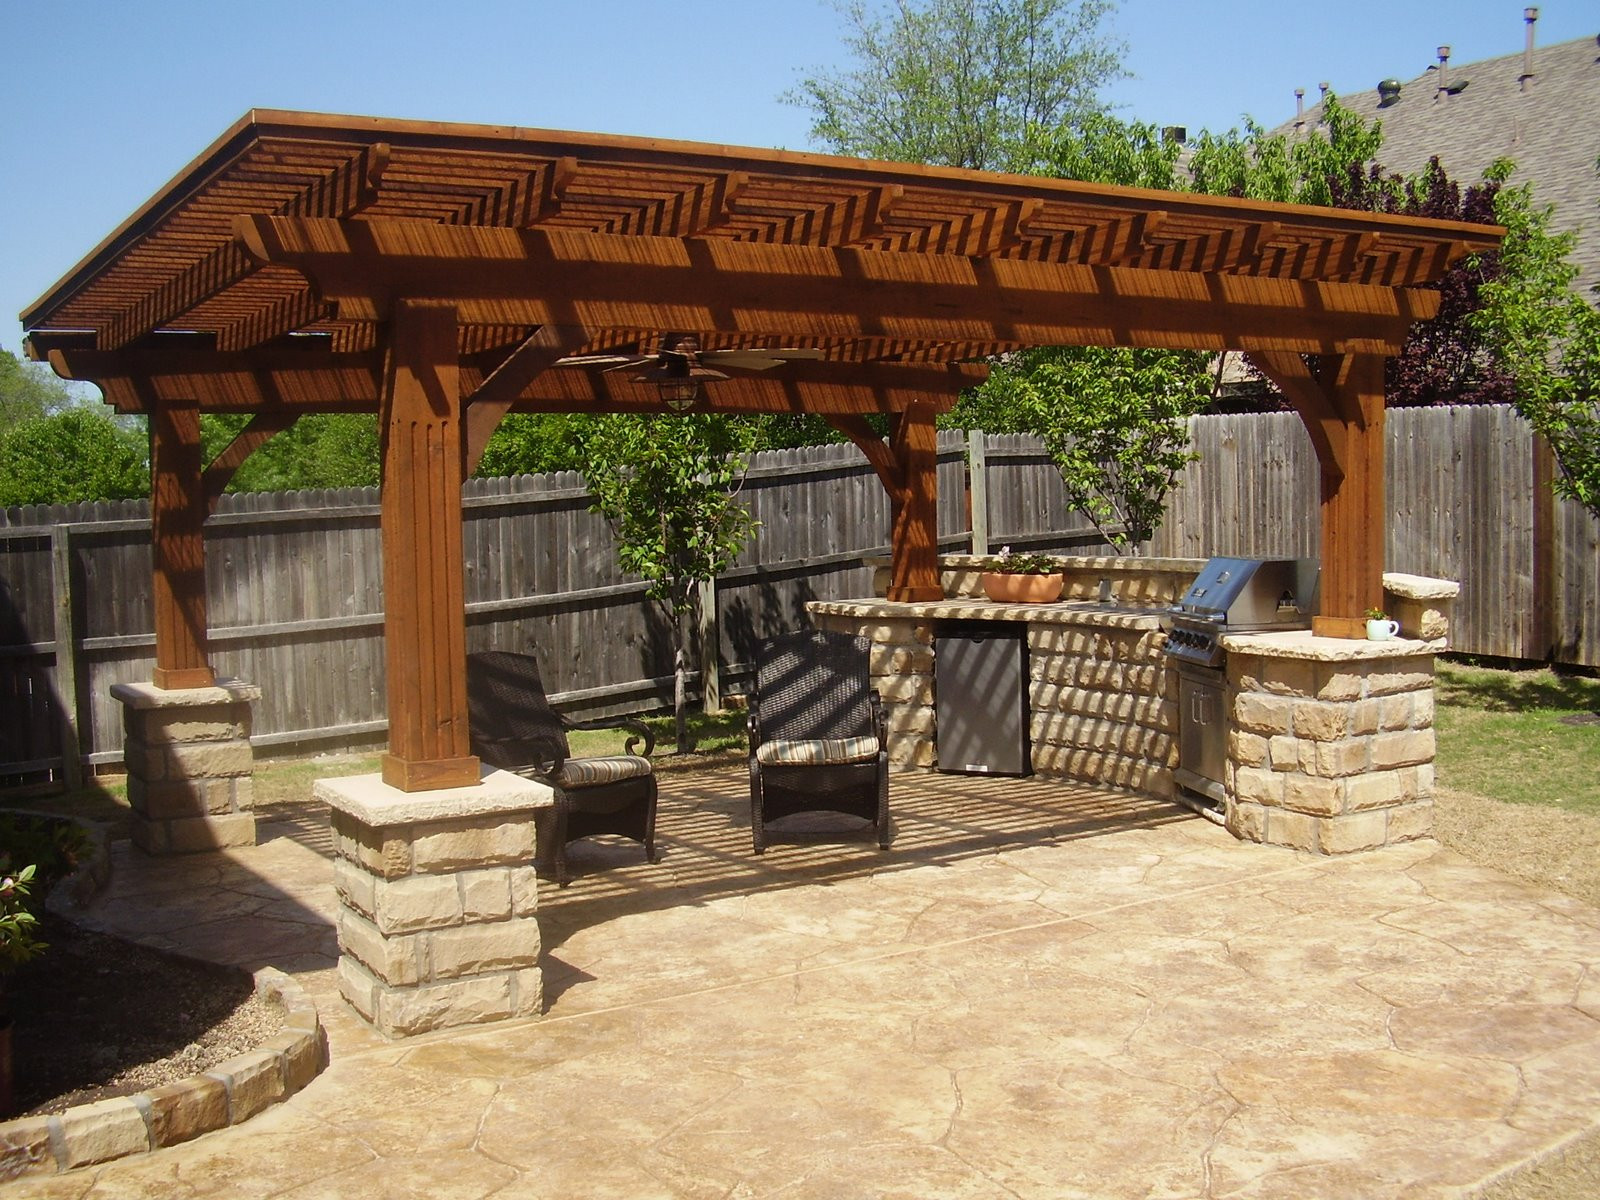 Best ideas about Patio Kitchen Ideas . Save or Pin Brainstorming the Outdoor Kitchen Roof Ideas for a Unique Now.